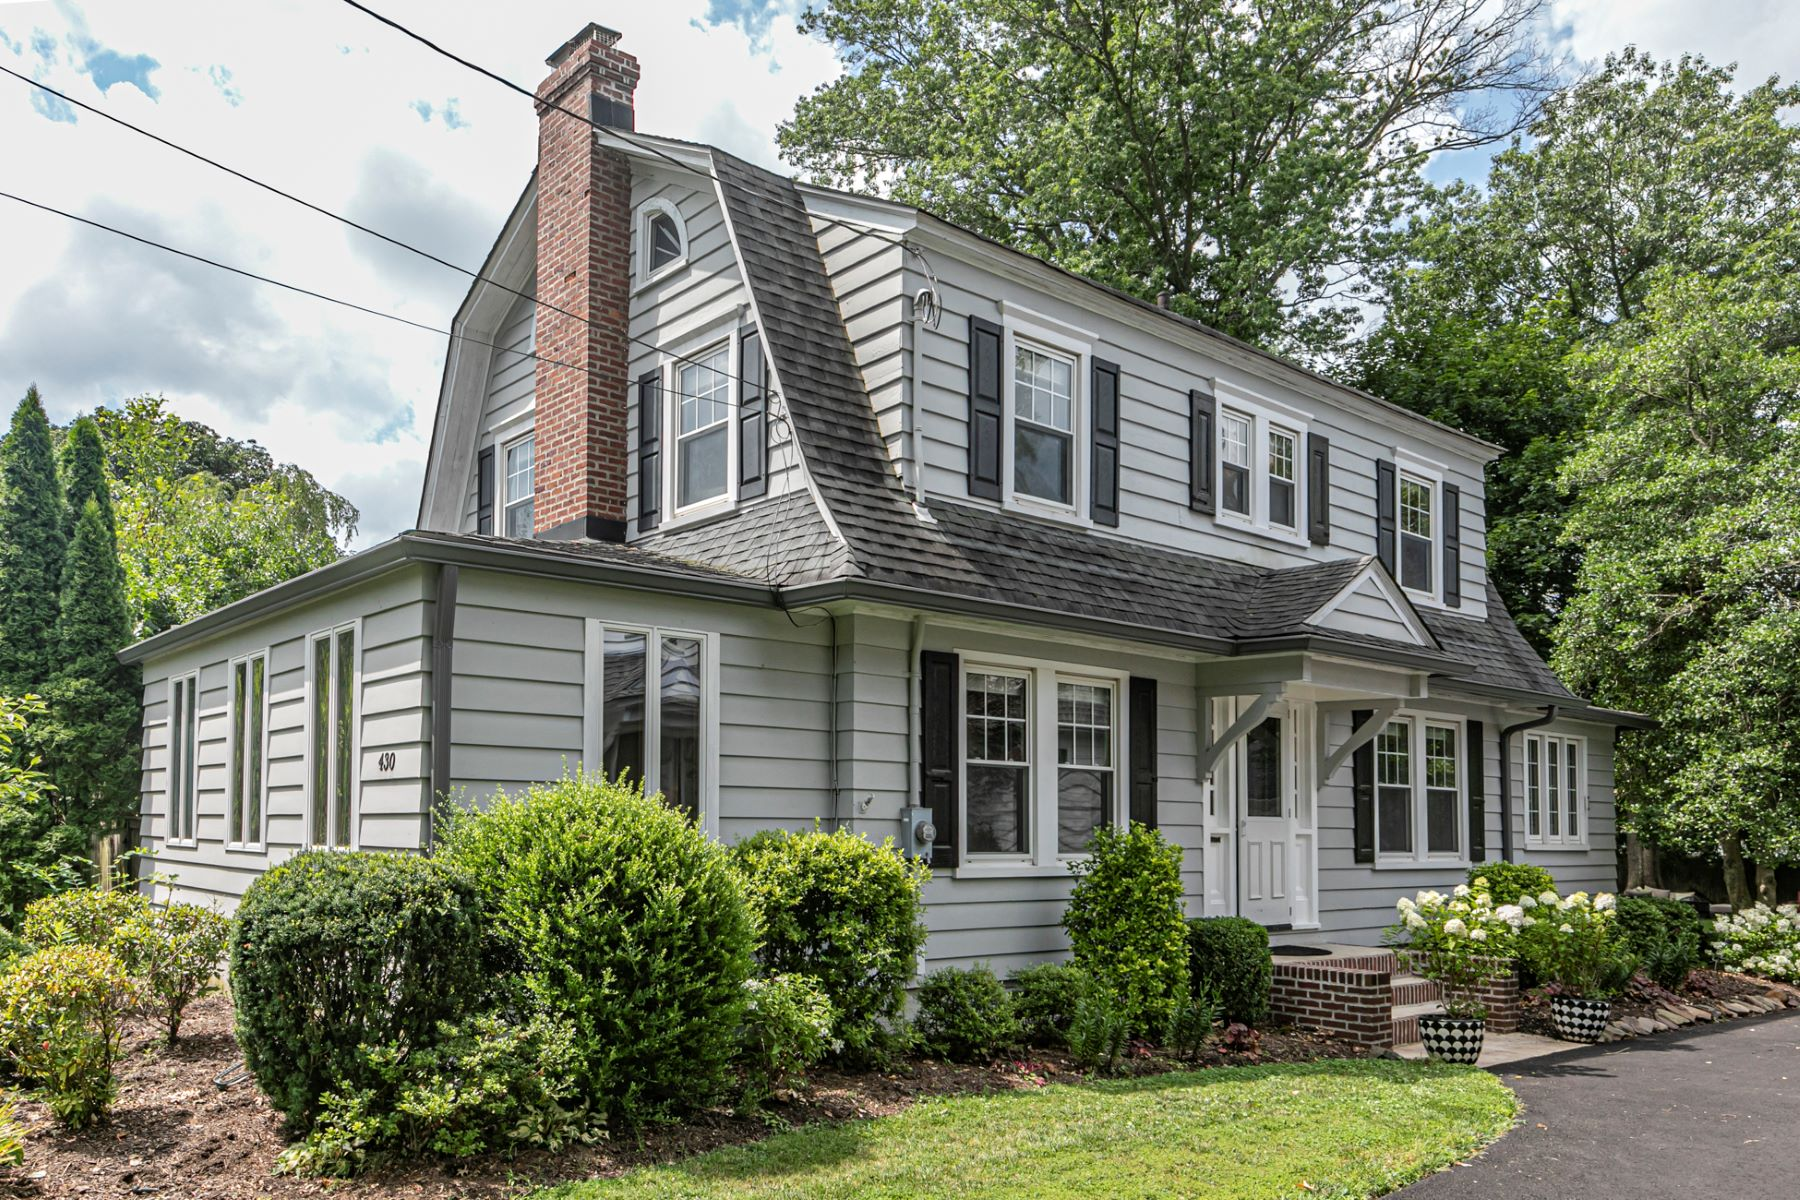 Single Family Homes for Sale at Updated, Stylish, & Sweet As Can Be 430 Burd Street, Pennington, New Jersey 08534 United States